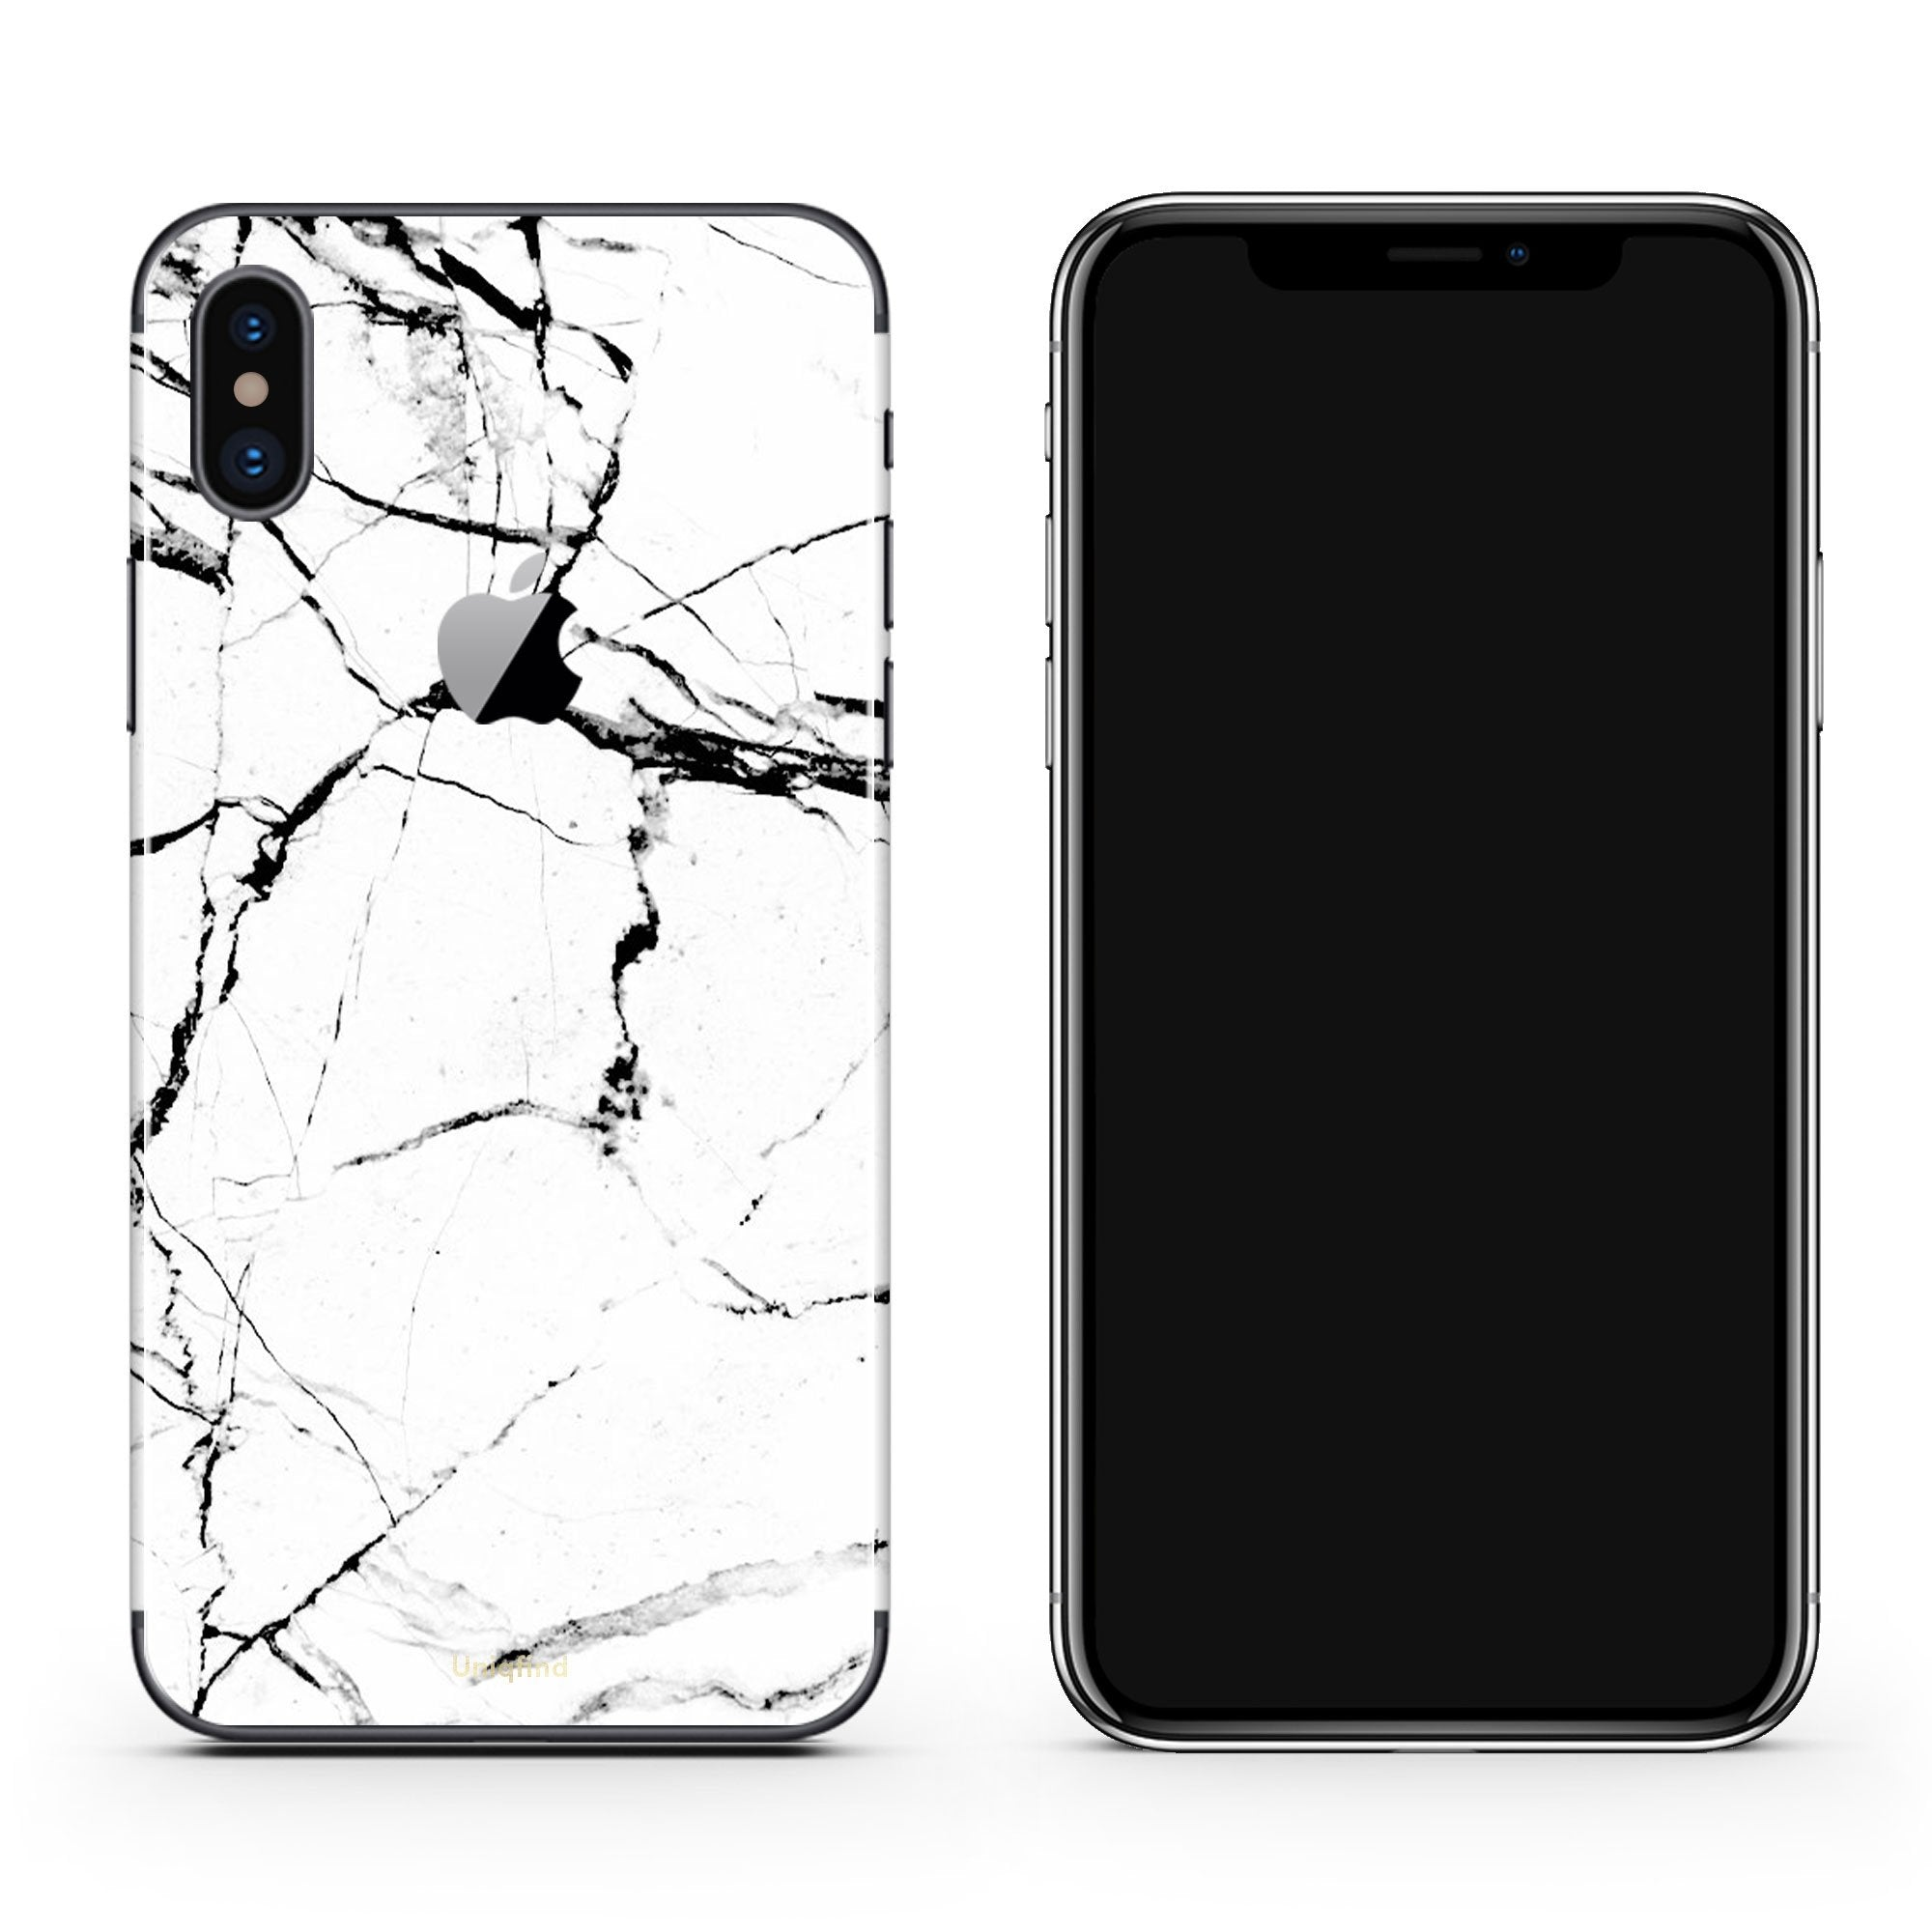 iPhone Marble Decal